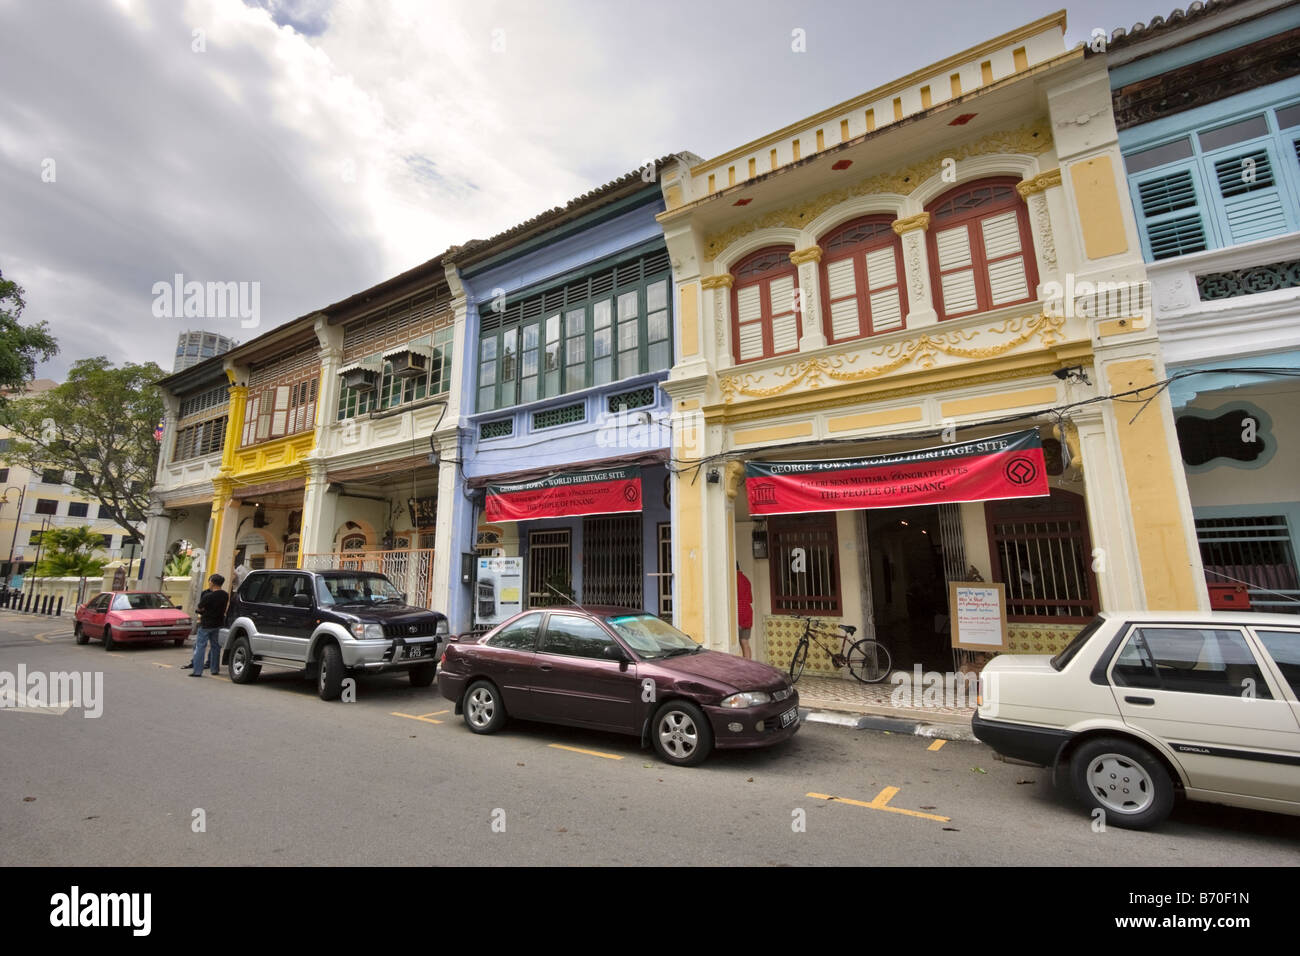 Shophouse on Armenian Street, Georgetown, Penang, where Dr Sun Yat Sen planned the Chinese revolution - Stock Image